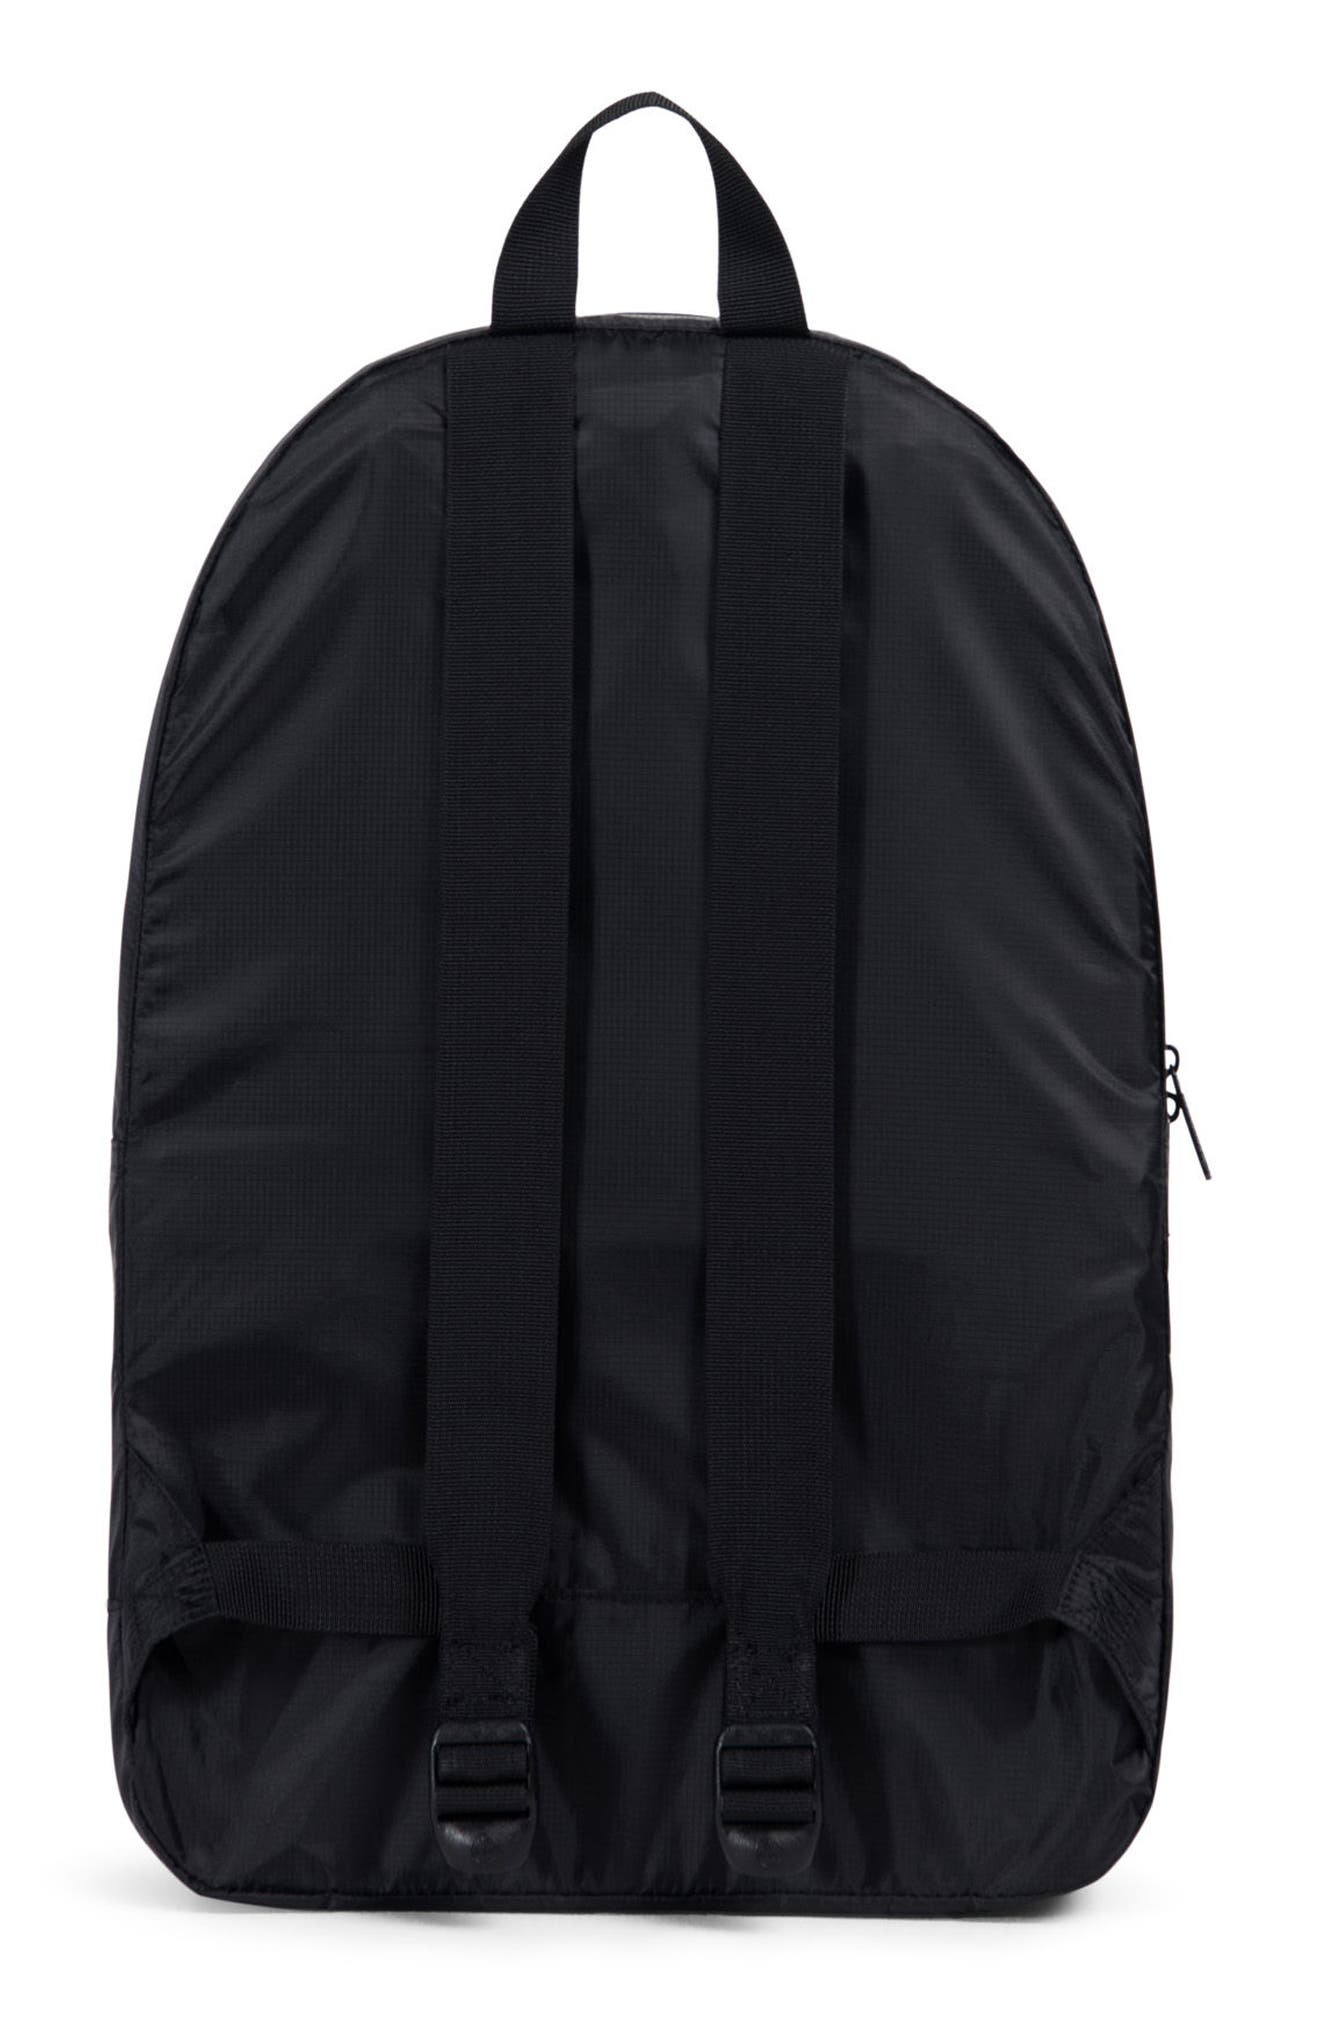 Packable Daypack,                             Alternate thumbnail 2, color,                             001